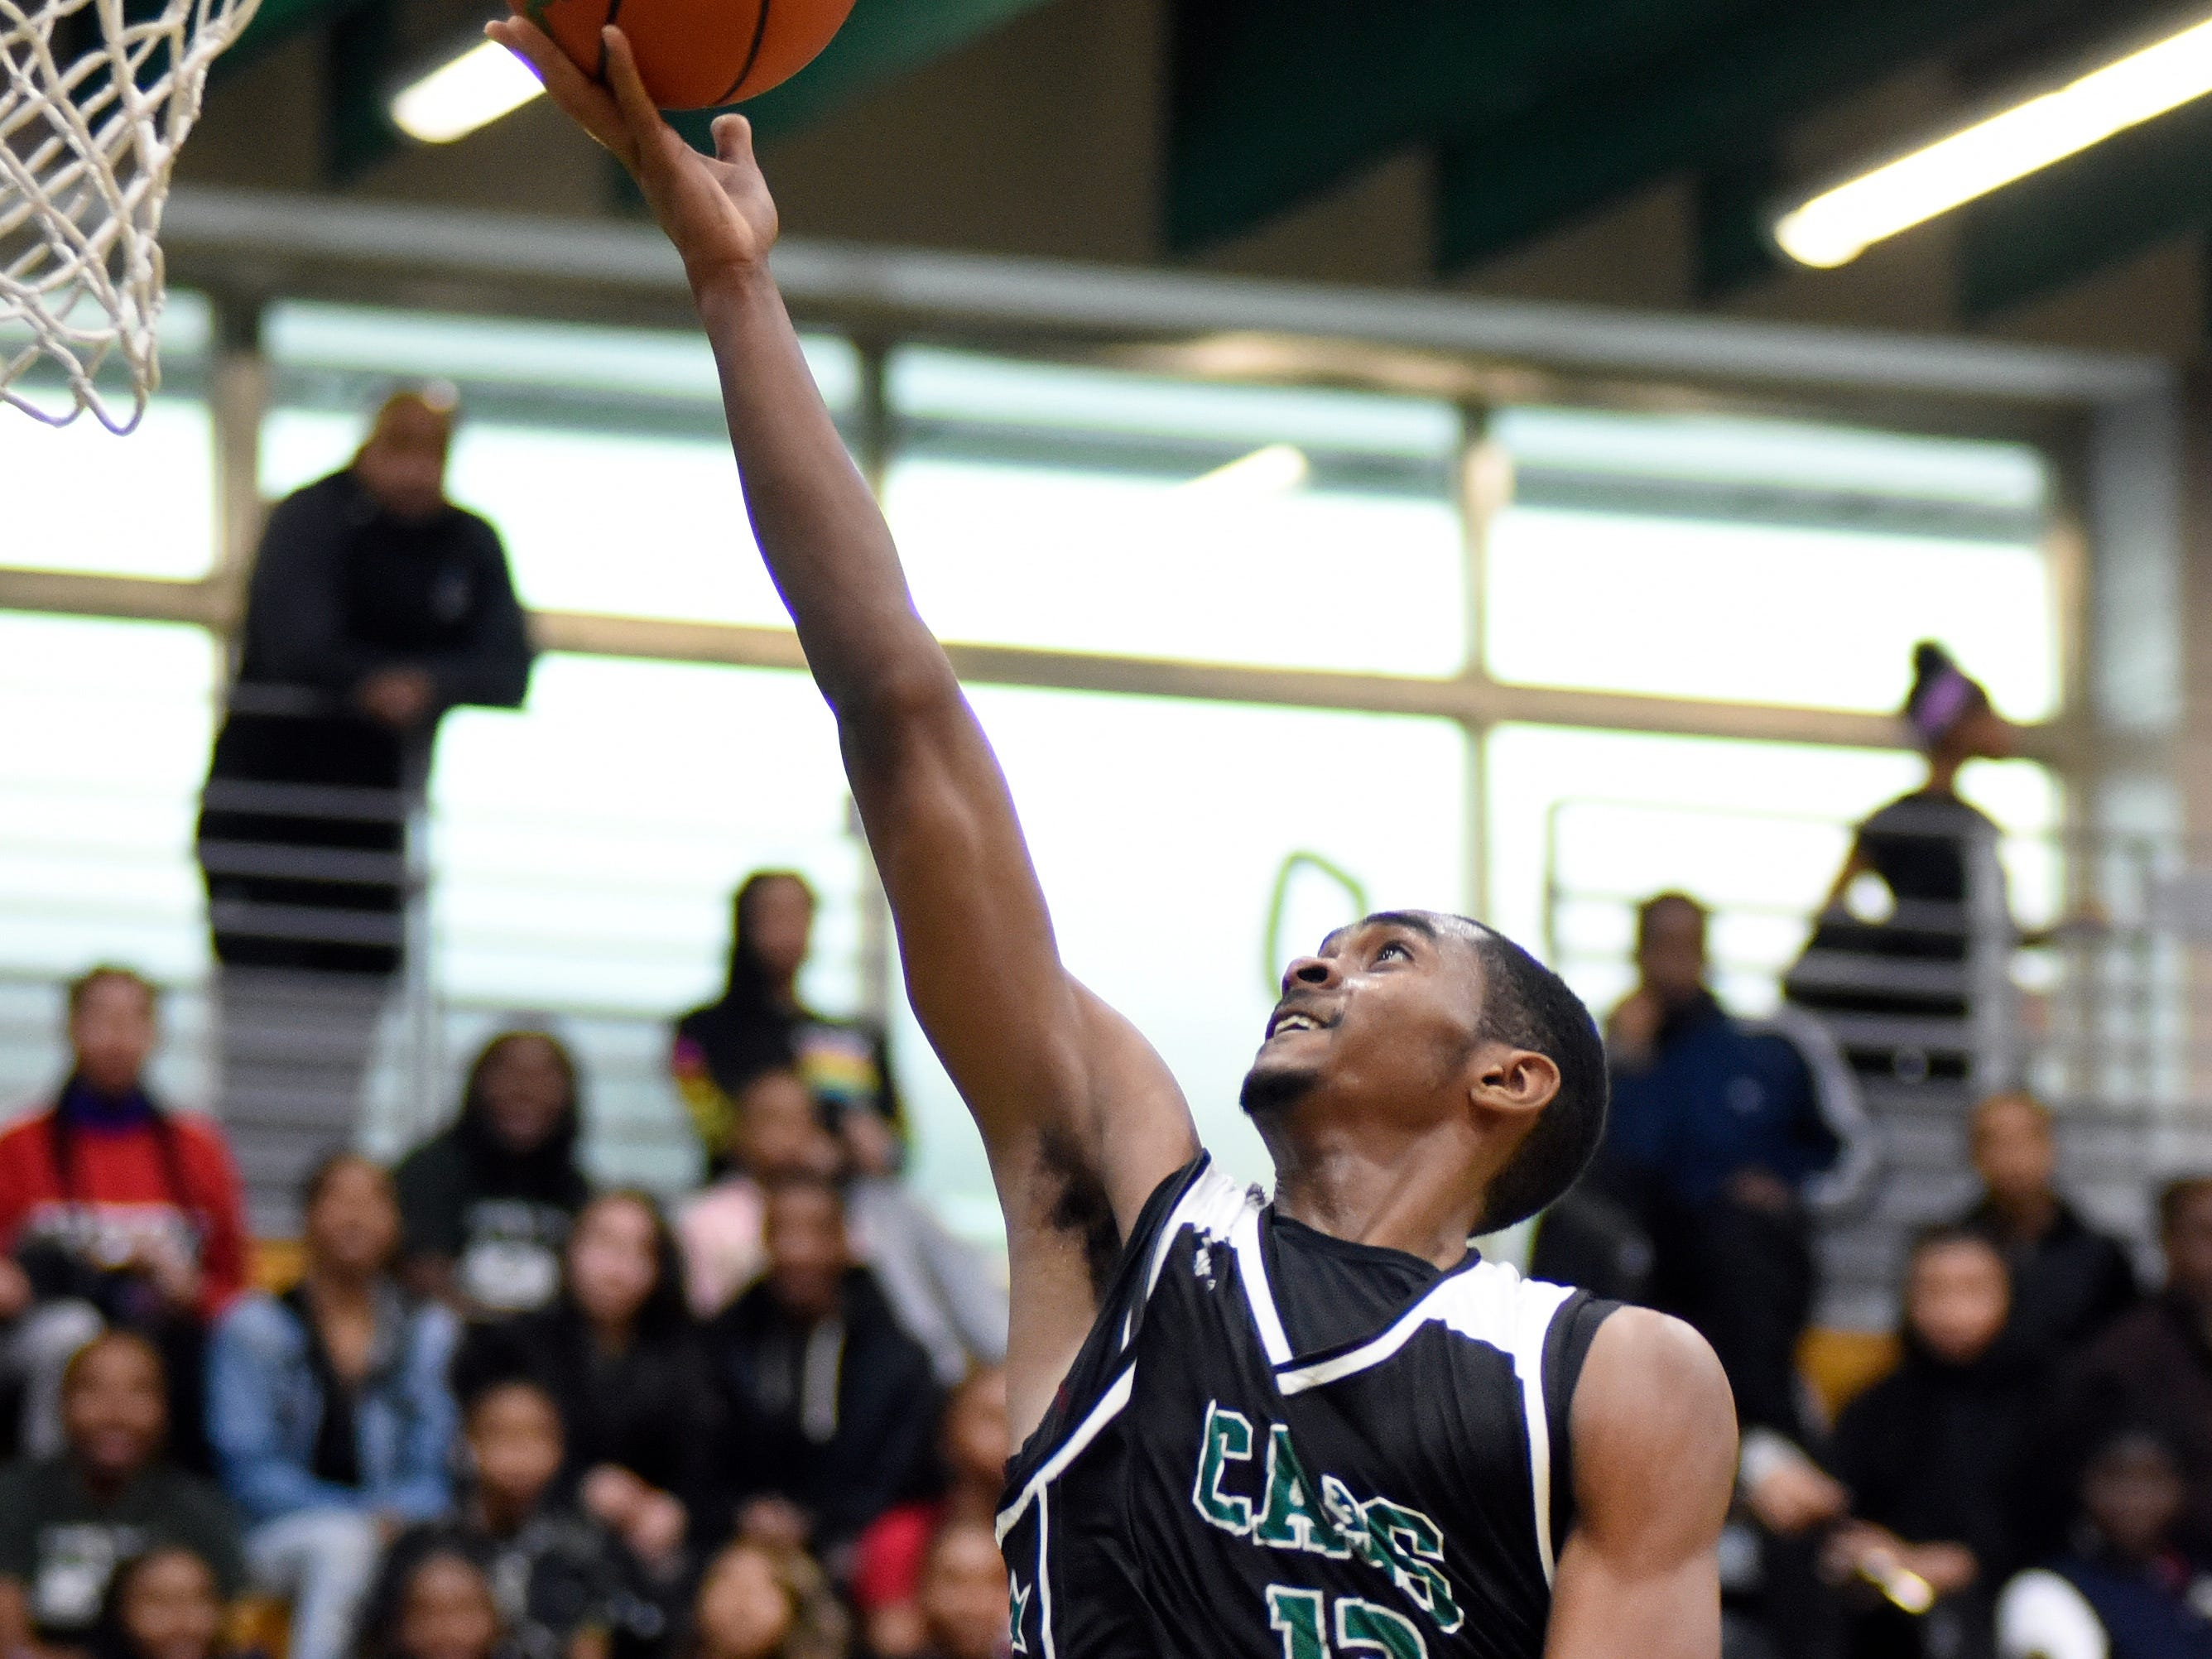 Cass Tech's Kalil Whitehead (13) goes in for a layup attempt against Detroit Pershing during the fourth quarter.